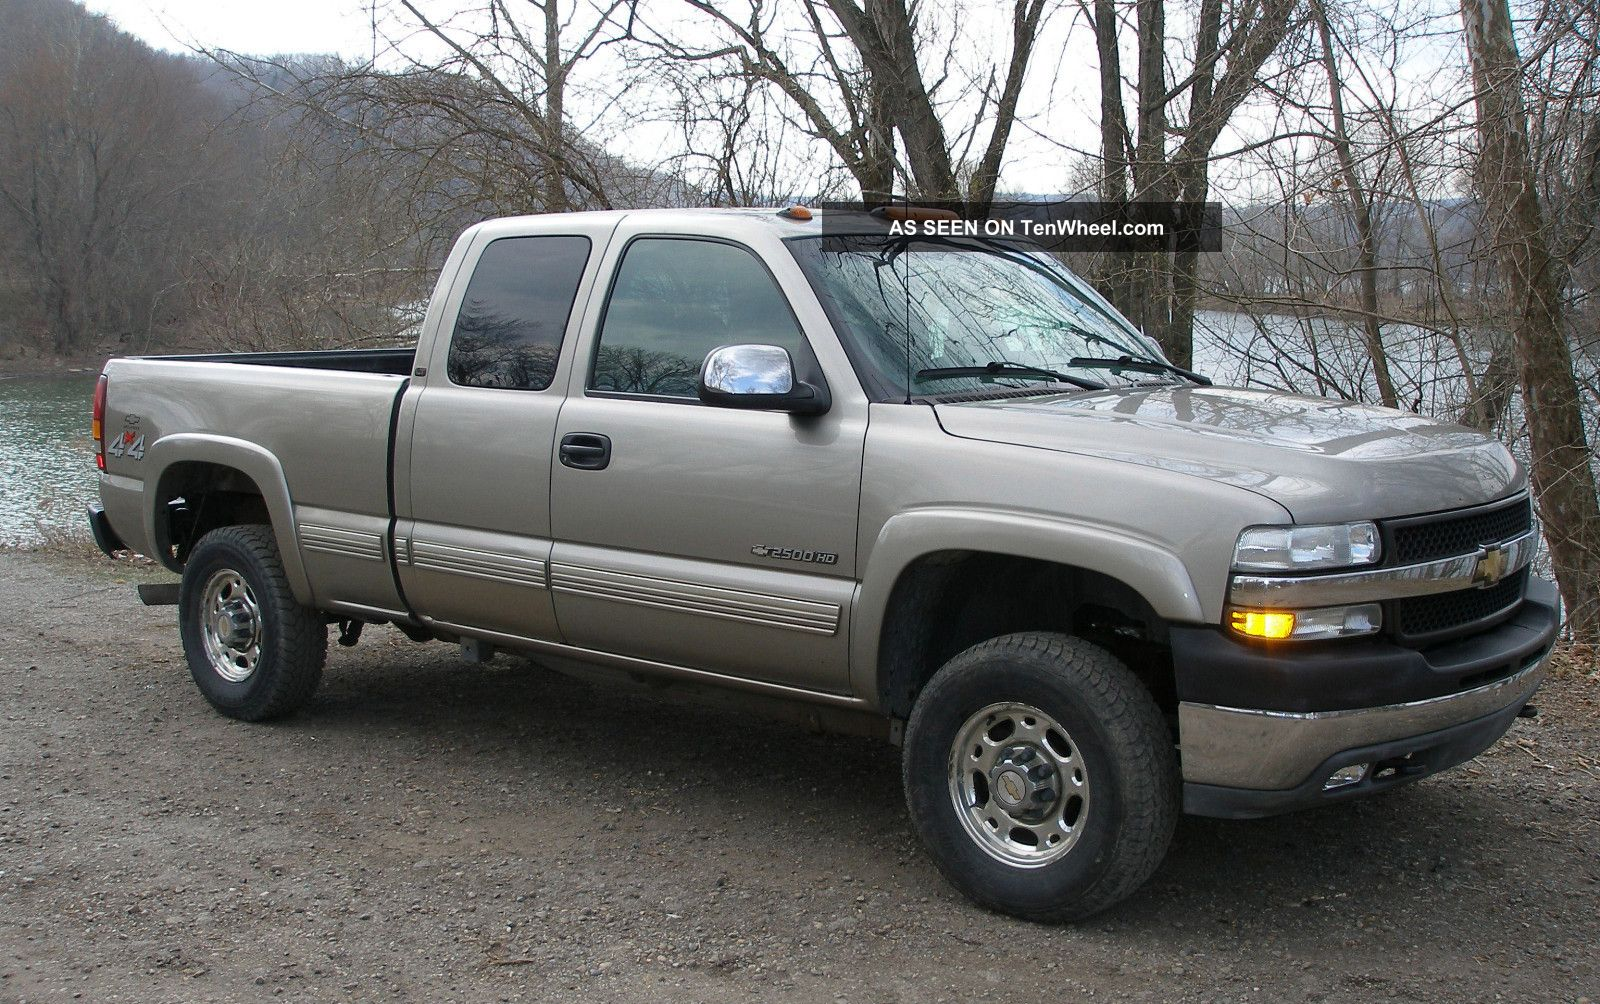 2001 Chevy Silverado Lt 2500hd 4wd Extended Cab - Loaded on